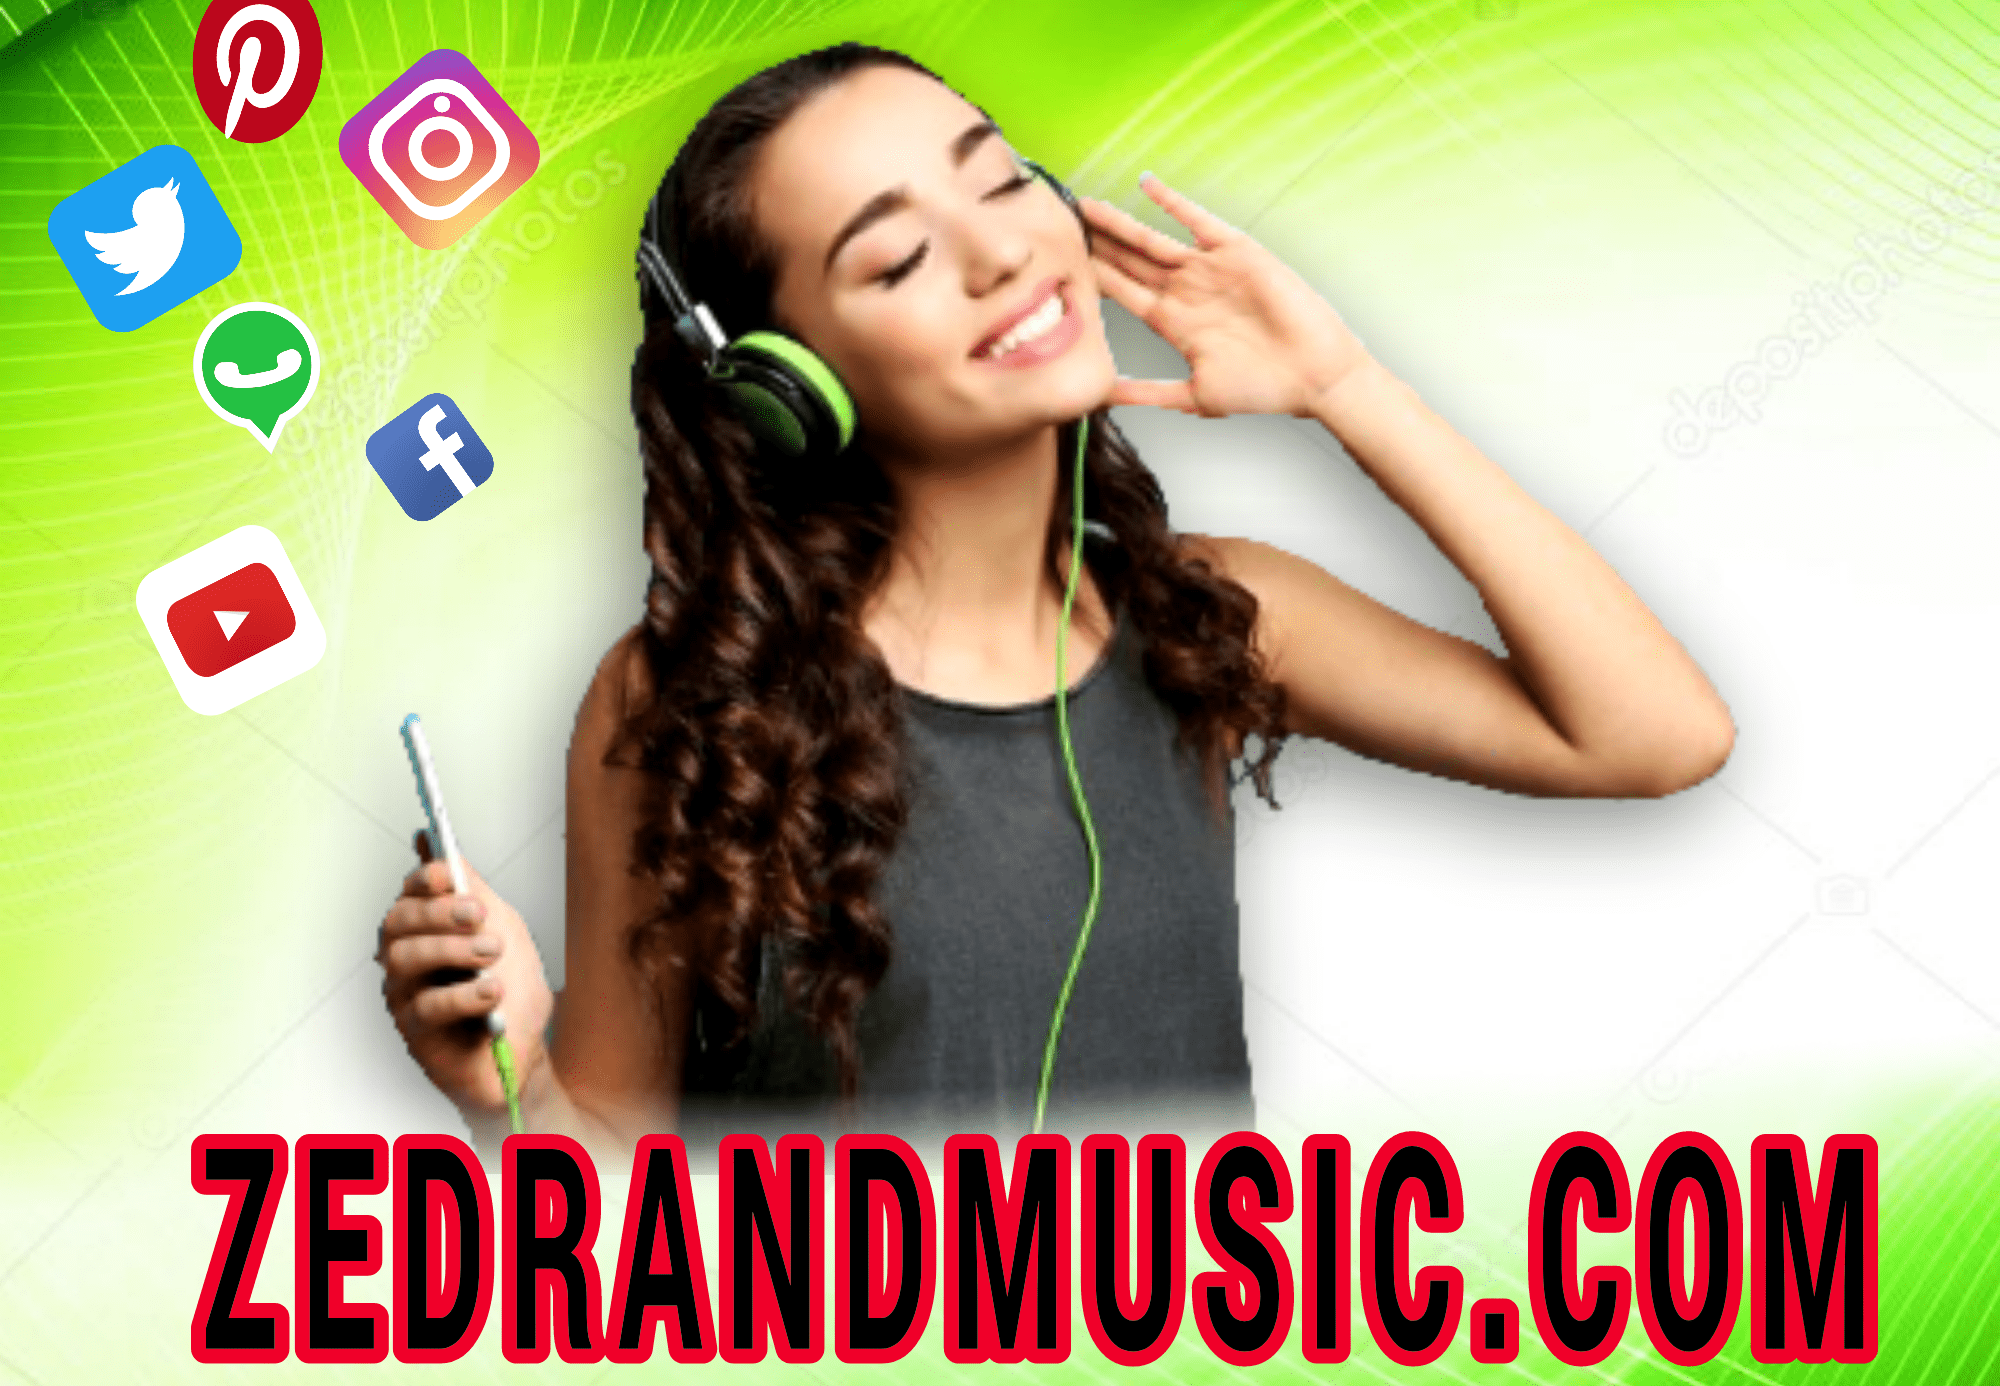 Zedrandmusic || No.1 Entertainment Site || Letast Music|| Video ||News Updates || Zambian Music || Worldwide Music